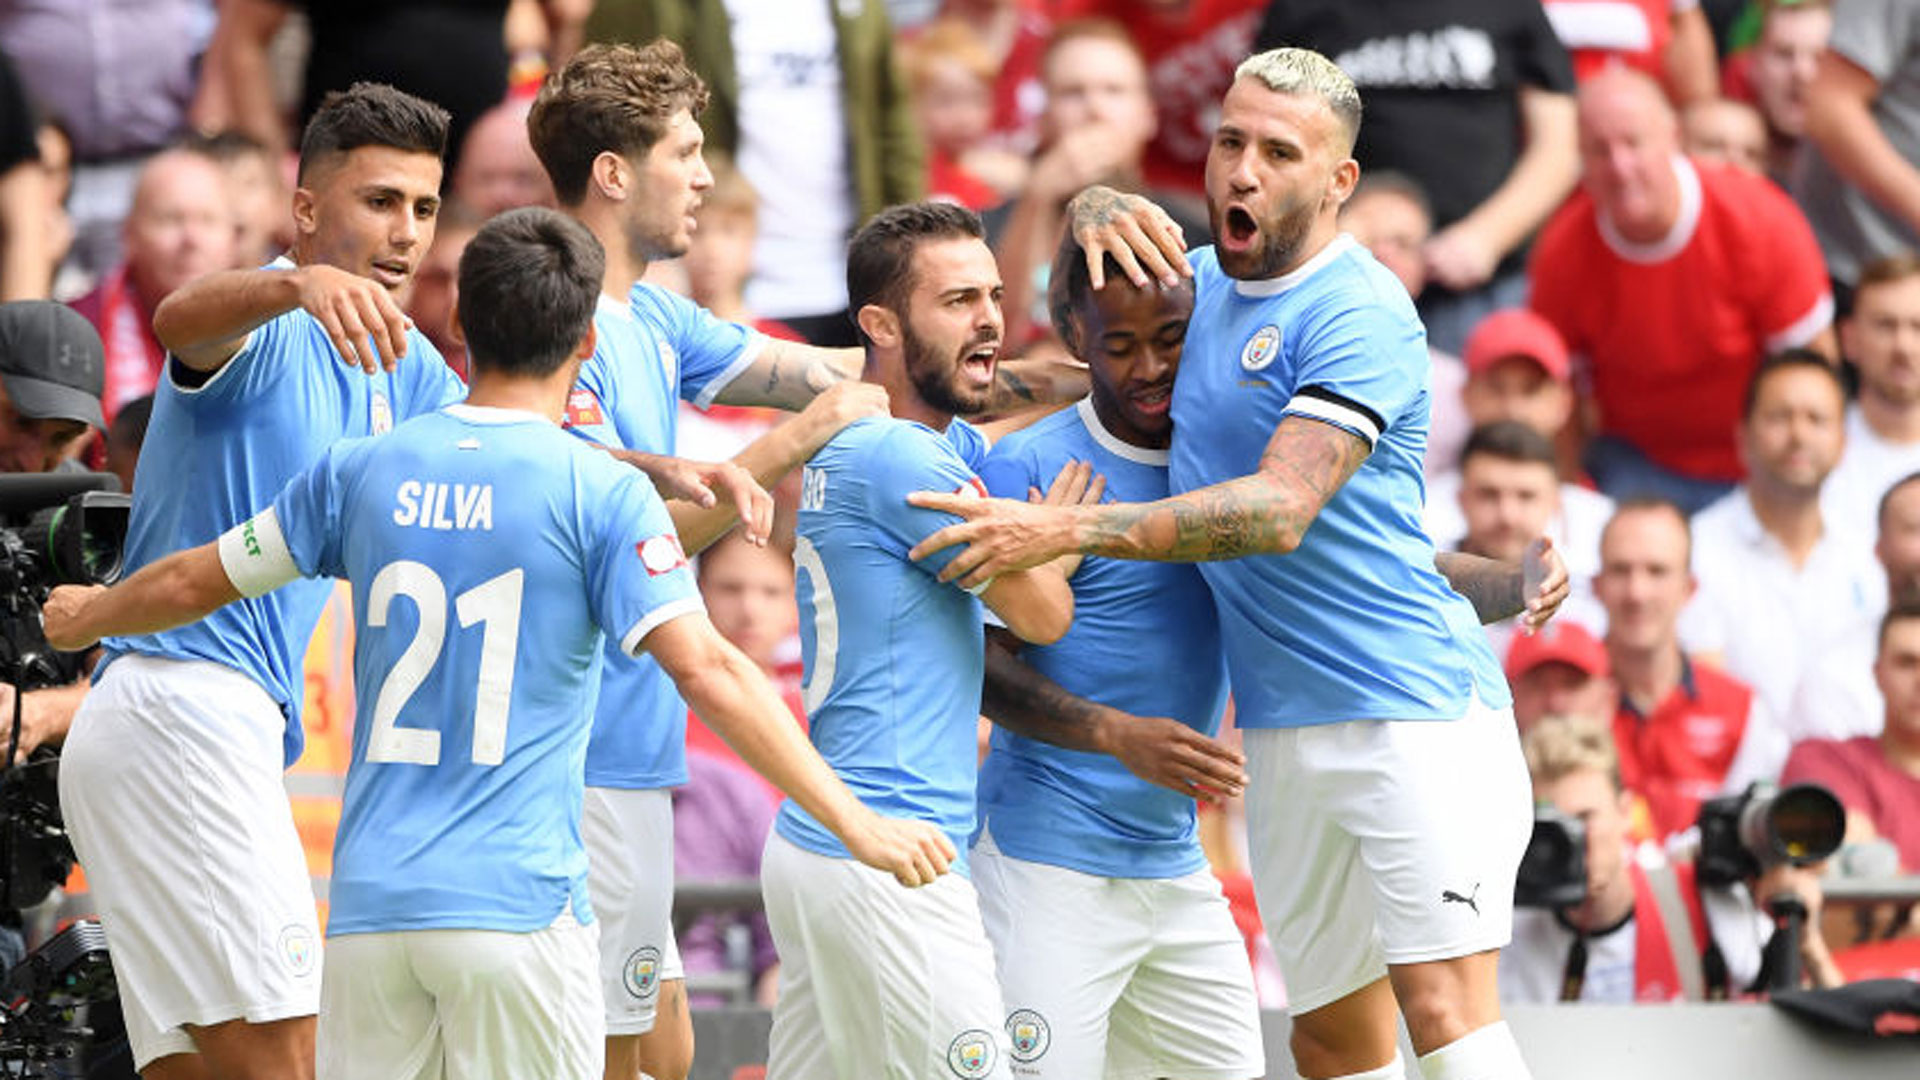 Liverpool - Manchester City (1-1 a.t.b. 4-5) - Le Community Shield pour Manchester City